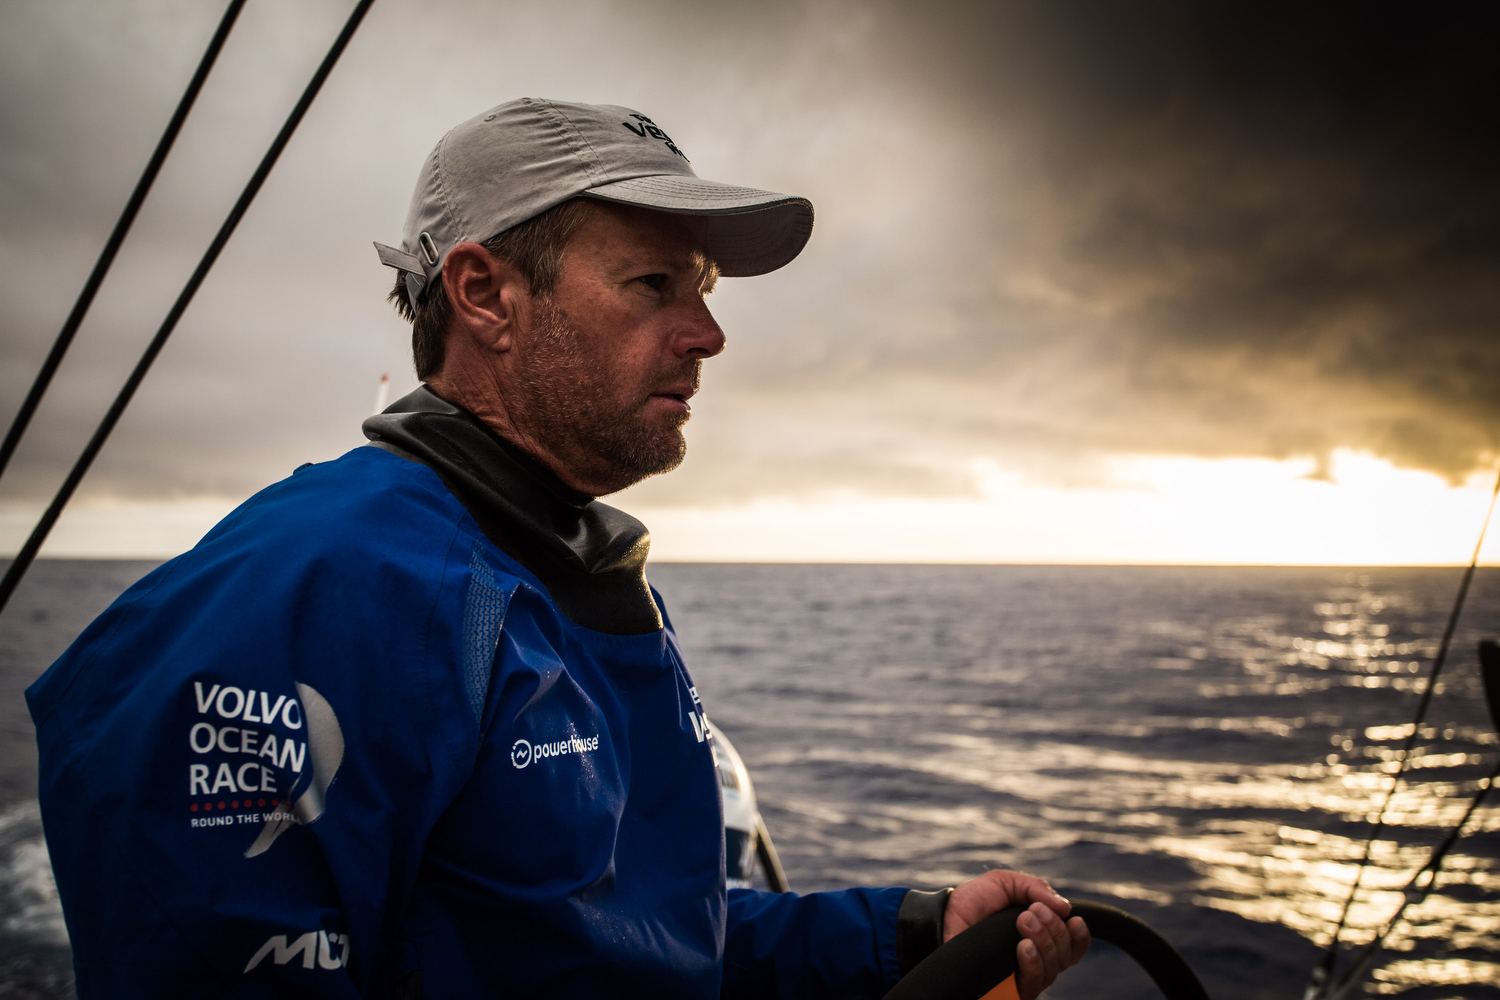 Volvo Ocean Race: parla Chris Nicholson, skipper di Team Vestas Wind